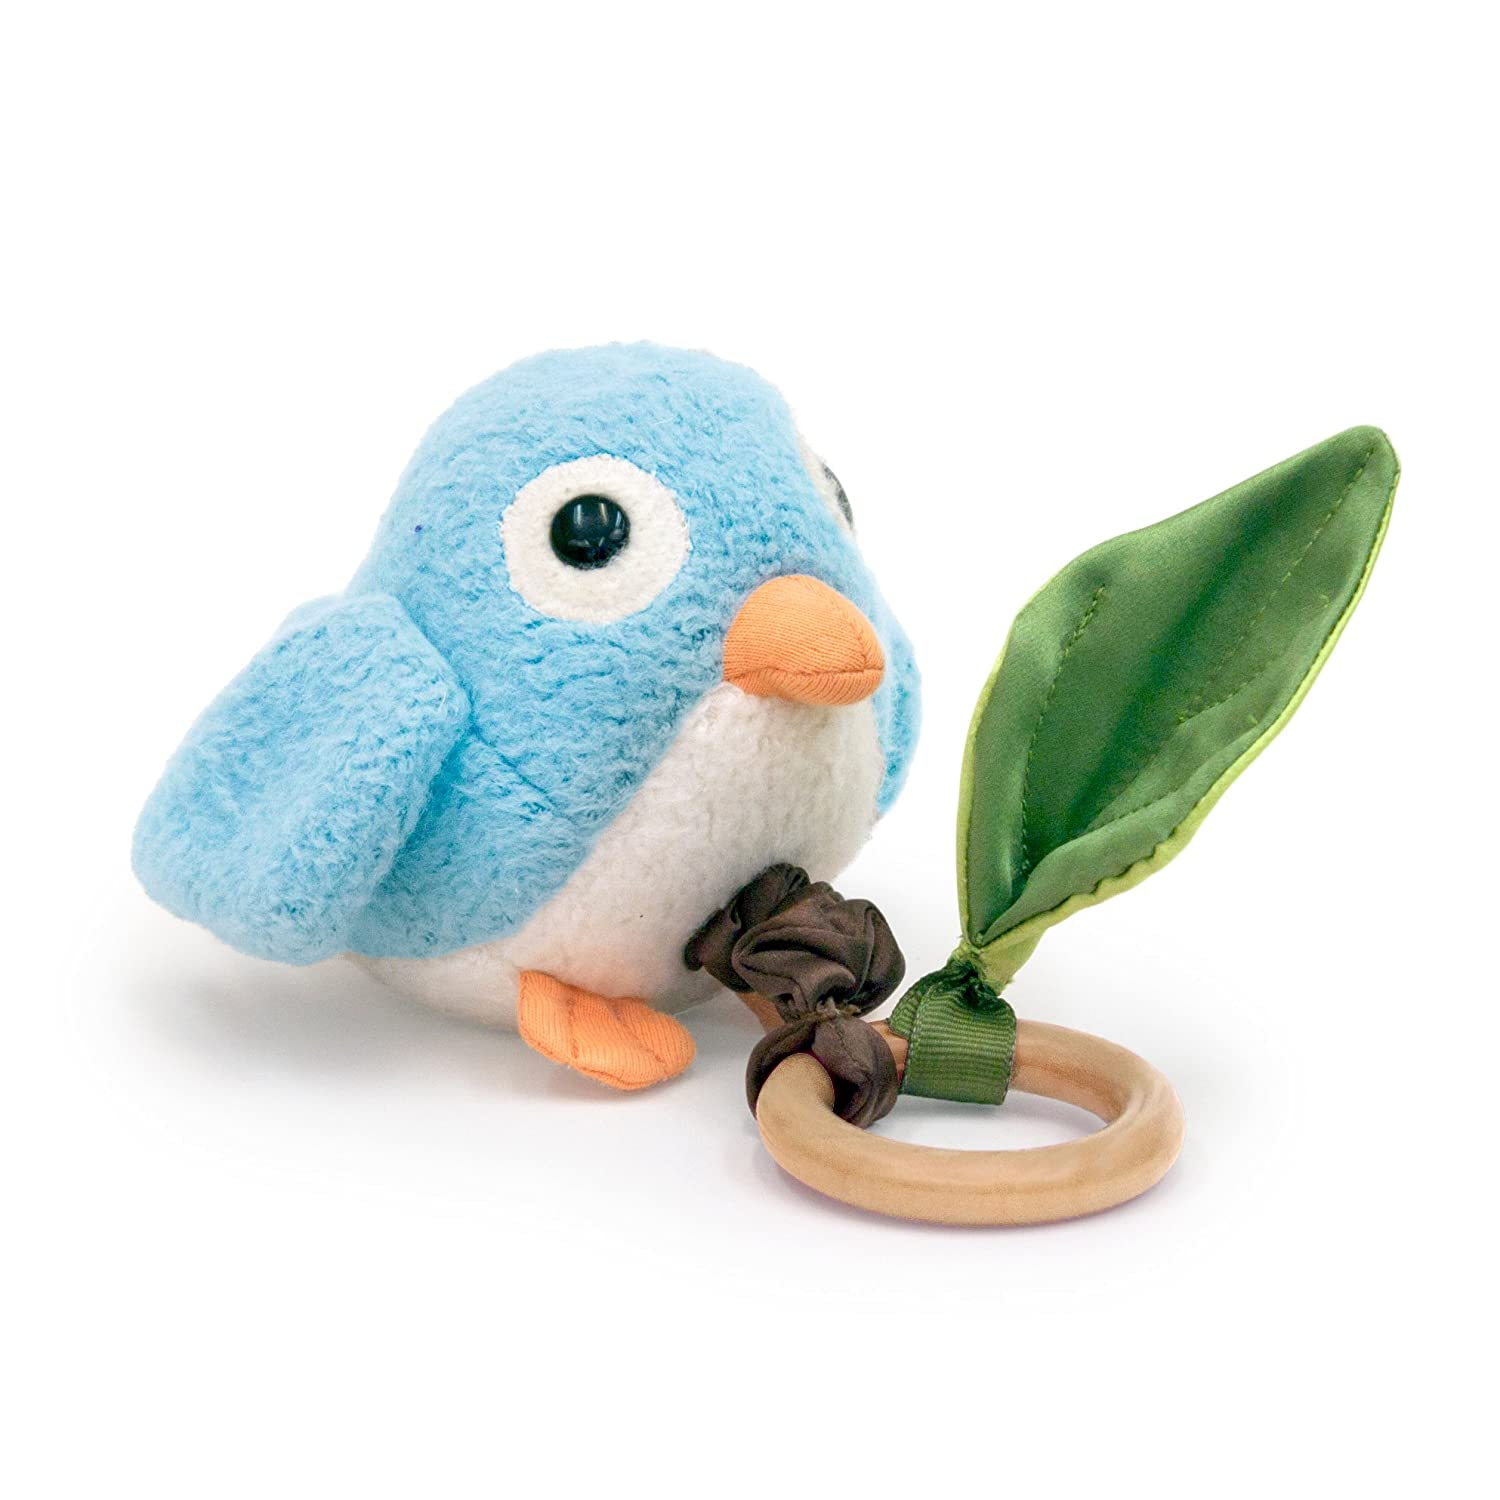 Apple Park Crawling Blue Birdie Teething Baby Toy - Hypoallergenic, 100% Organic Cotton, Bamboo Ring